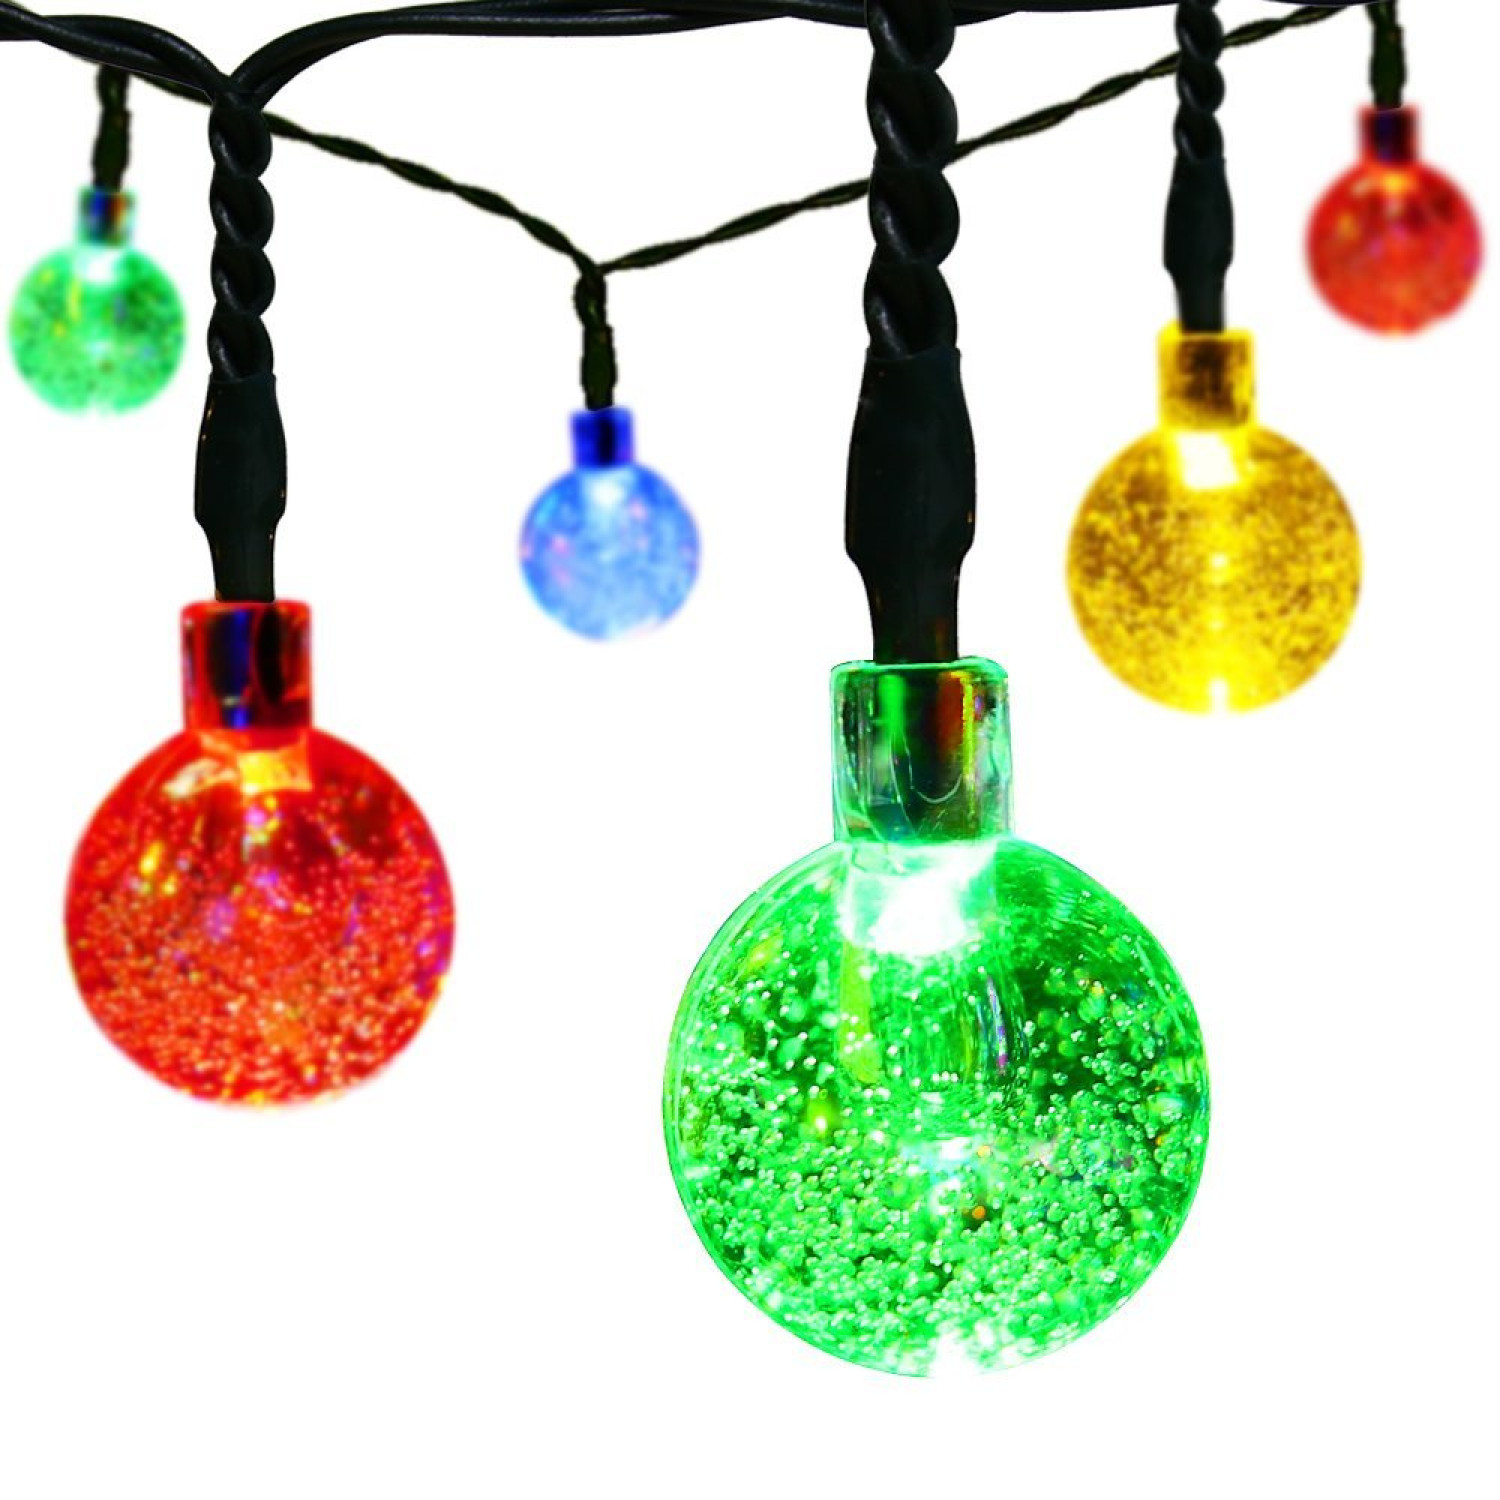 Christmas decorative led string lights balls w modes